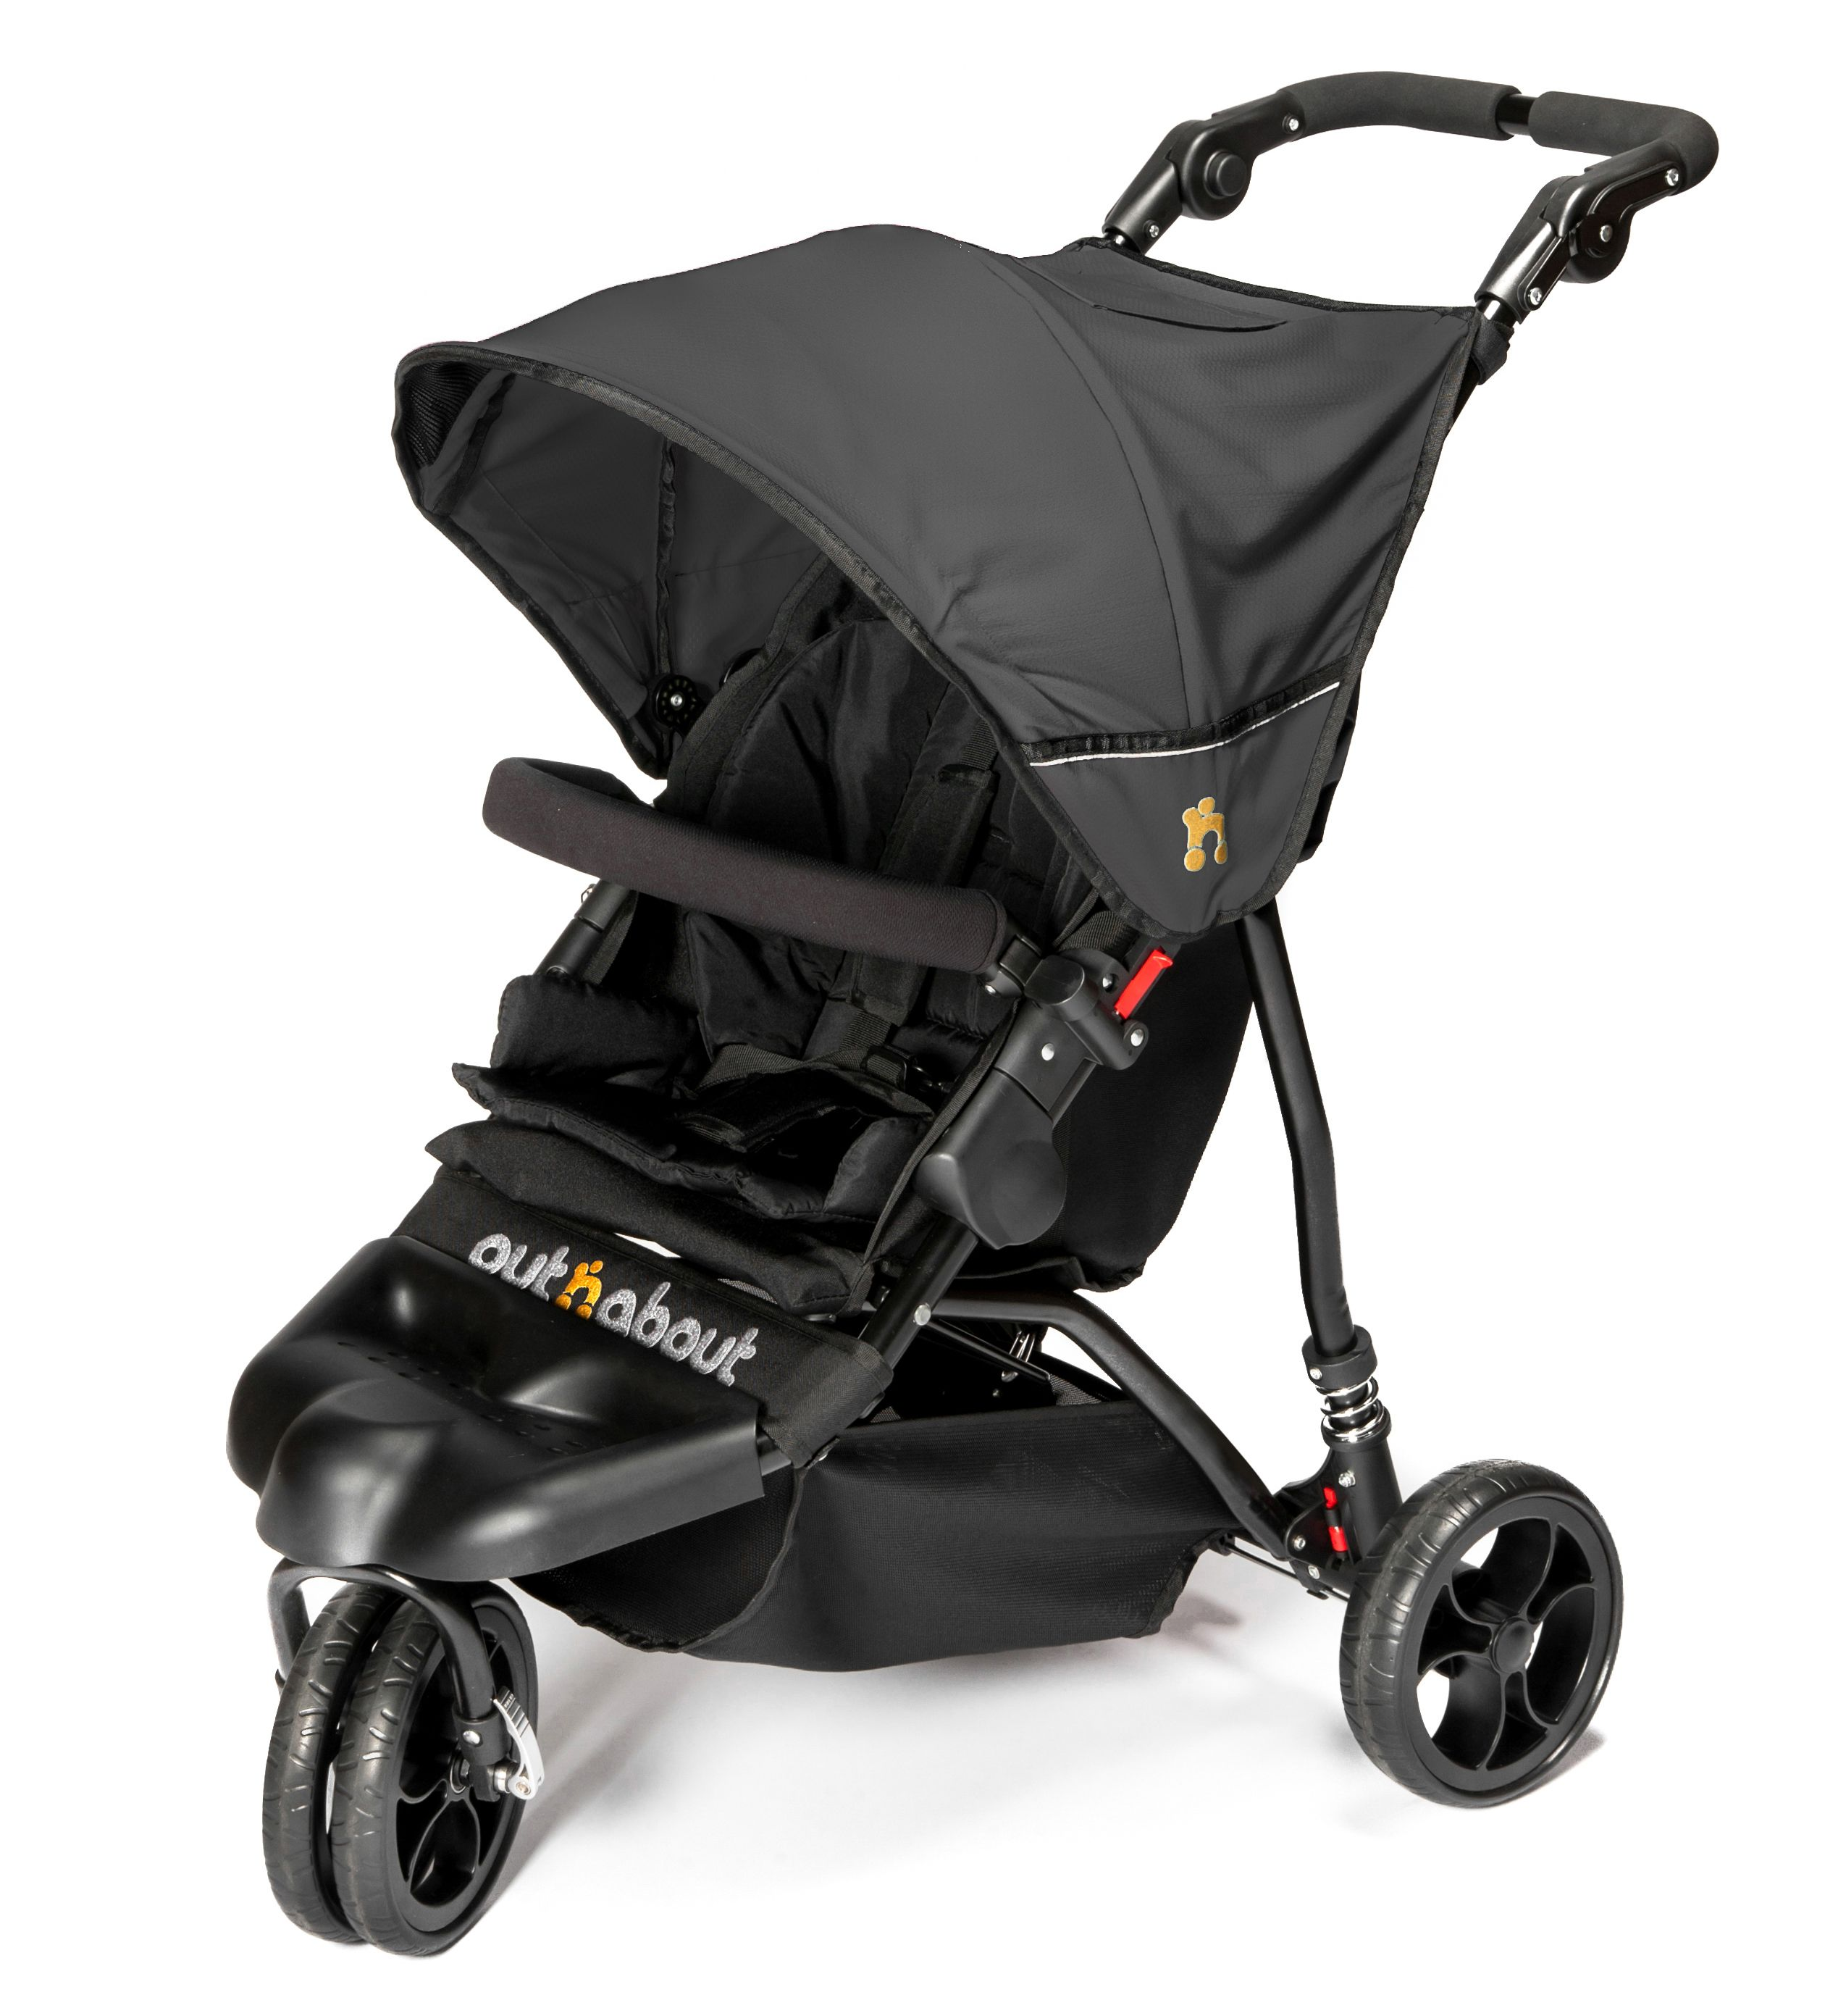 Out n About Pushchair, Stroller, Baby strollers